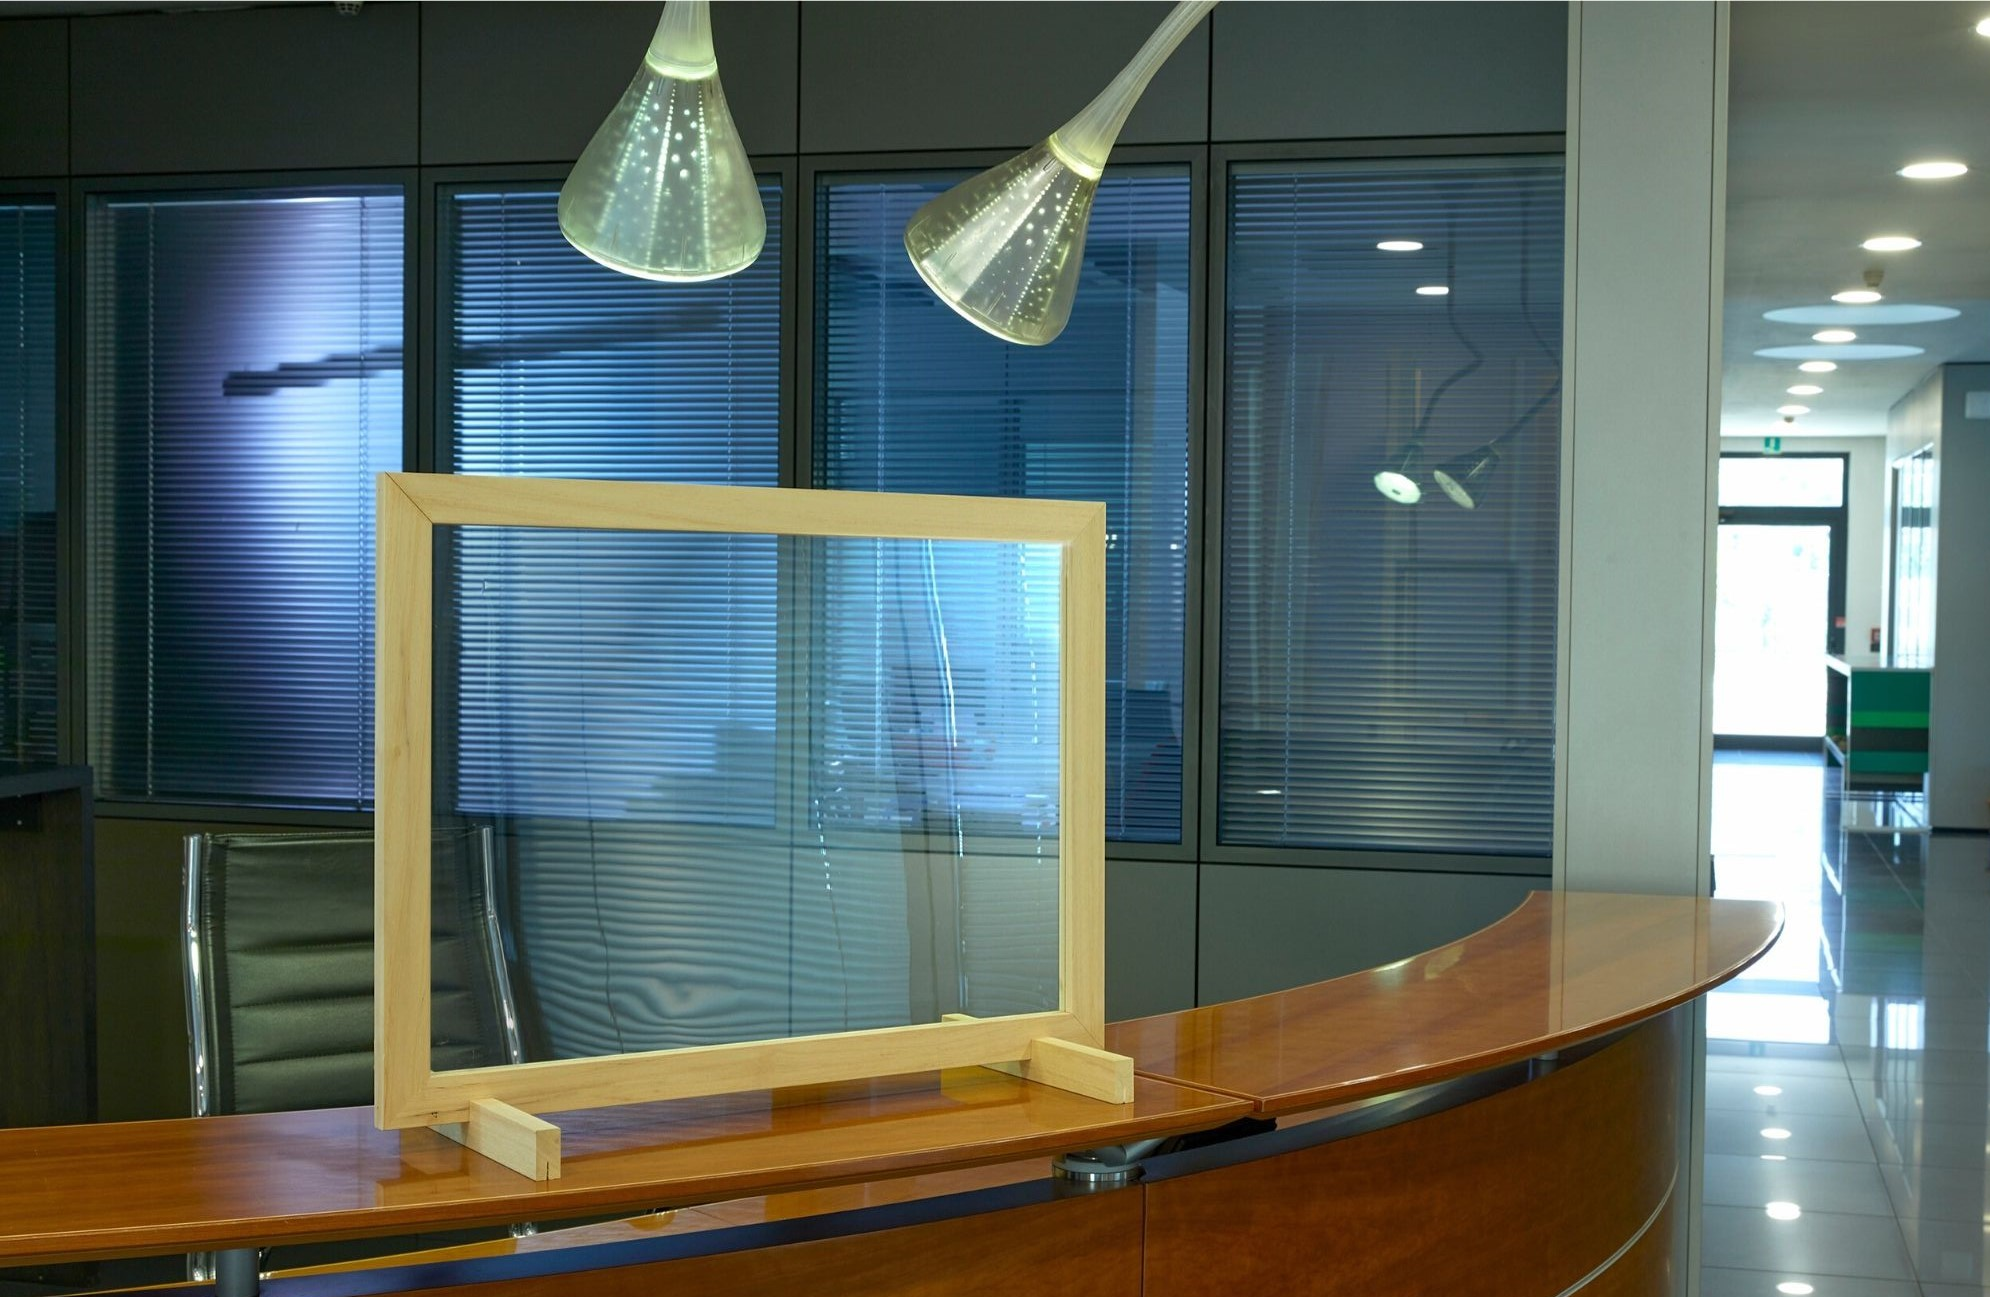 Mini Barriere Plexiglass e Legno Image